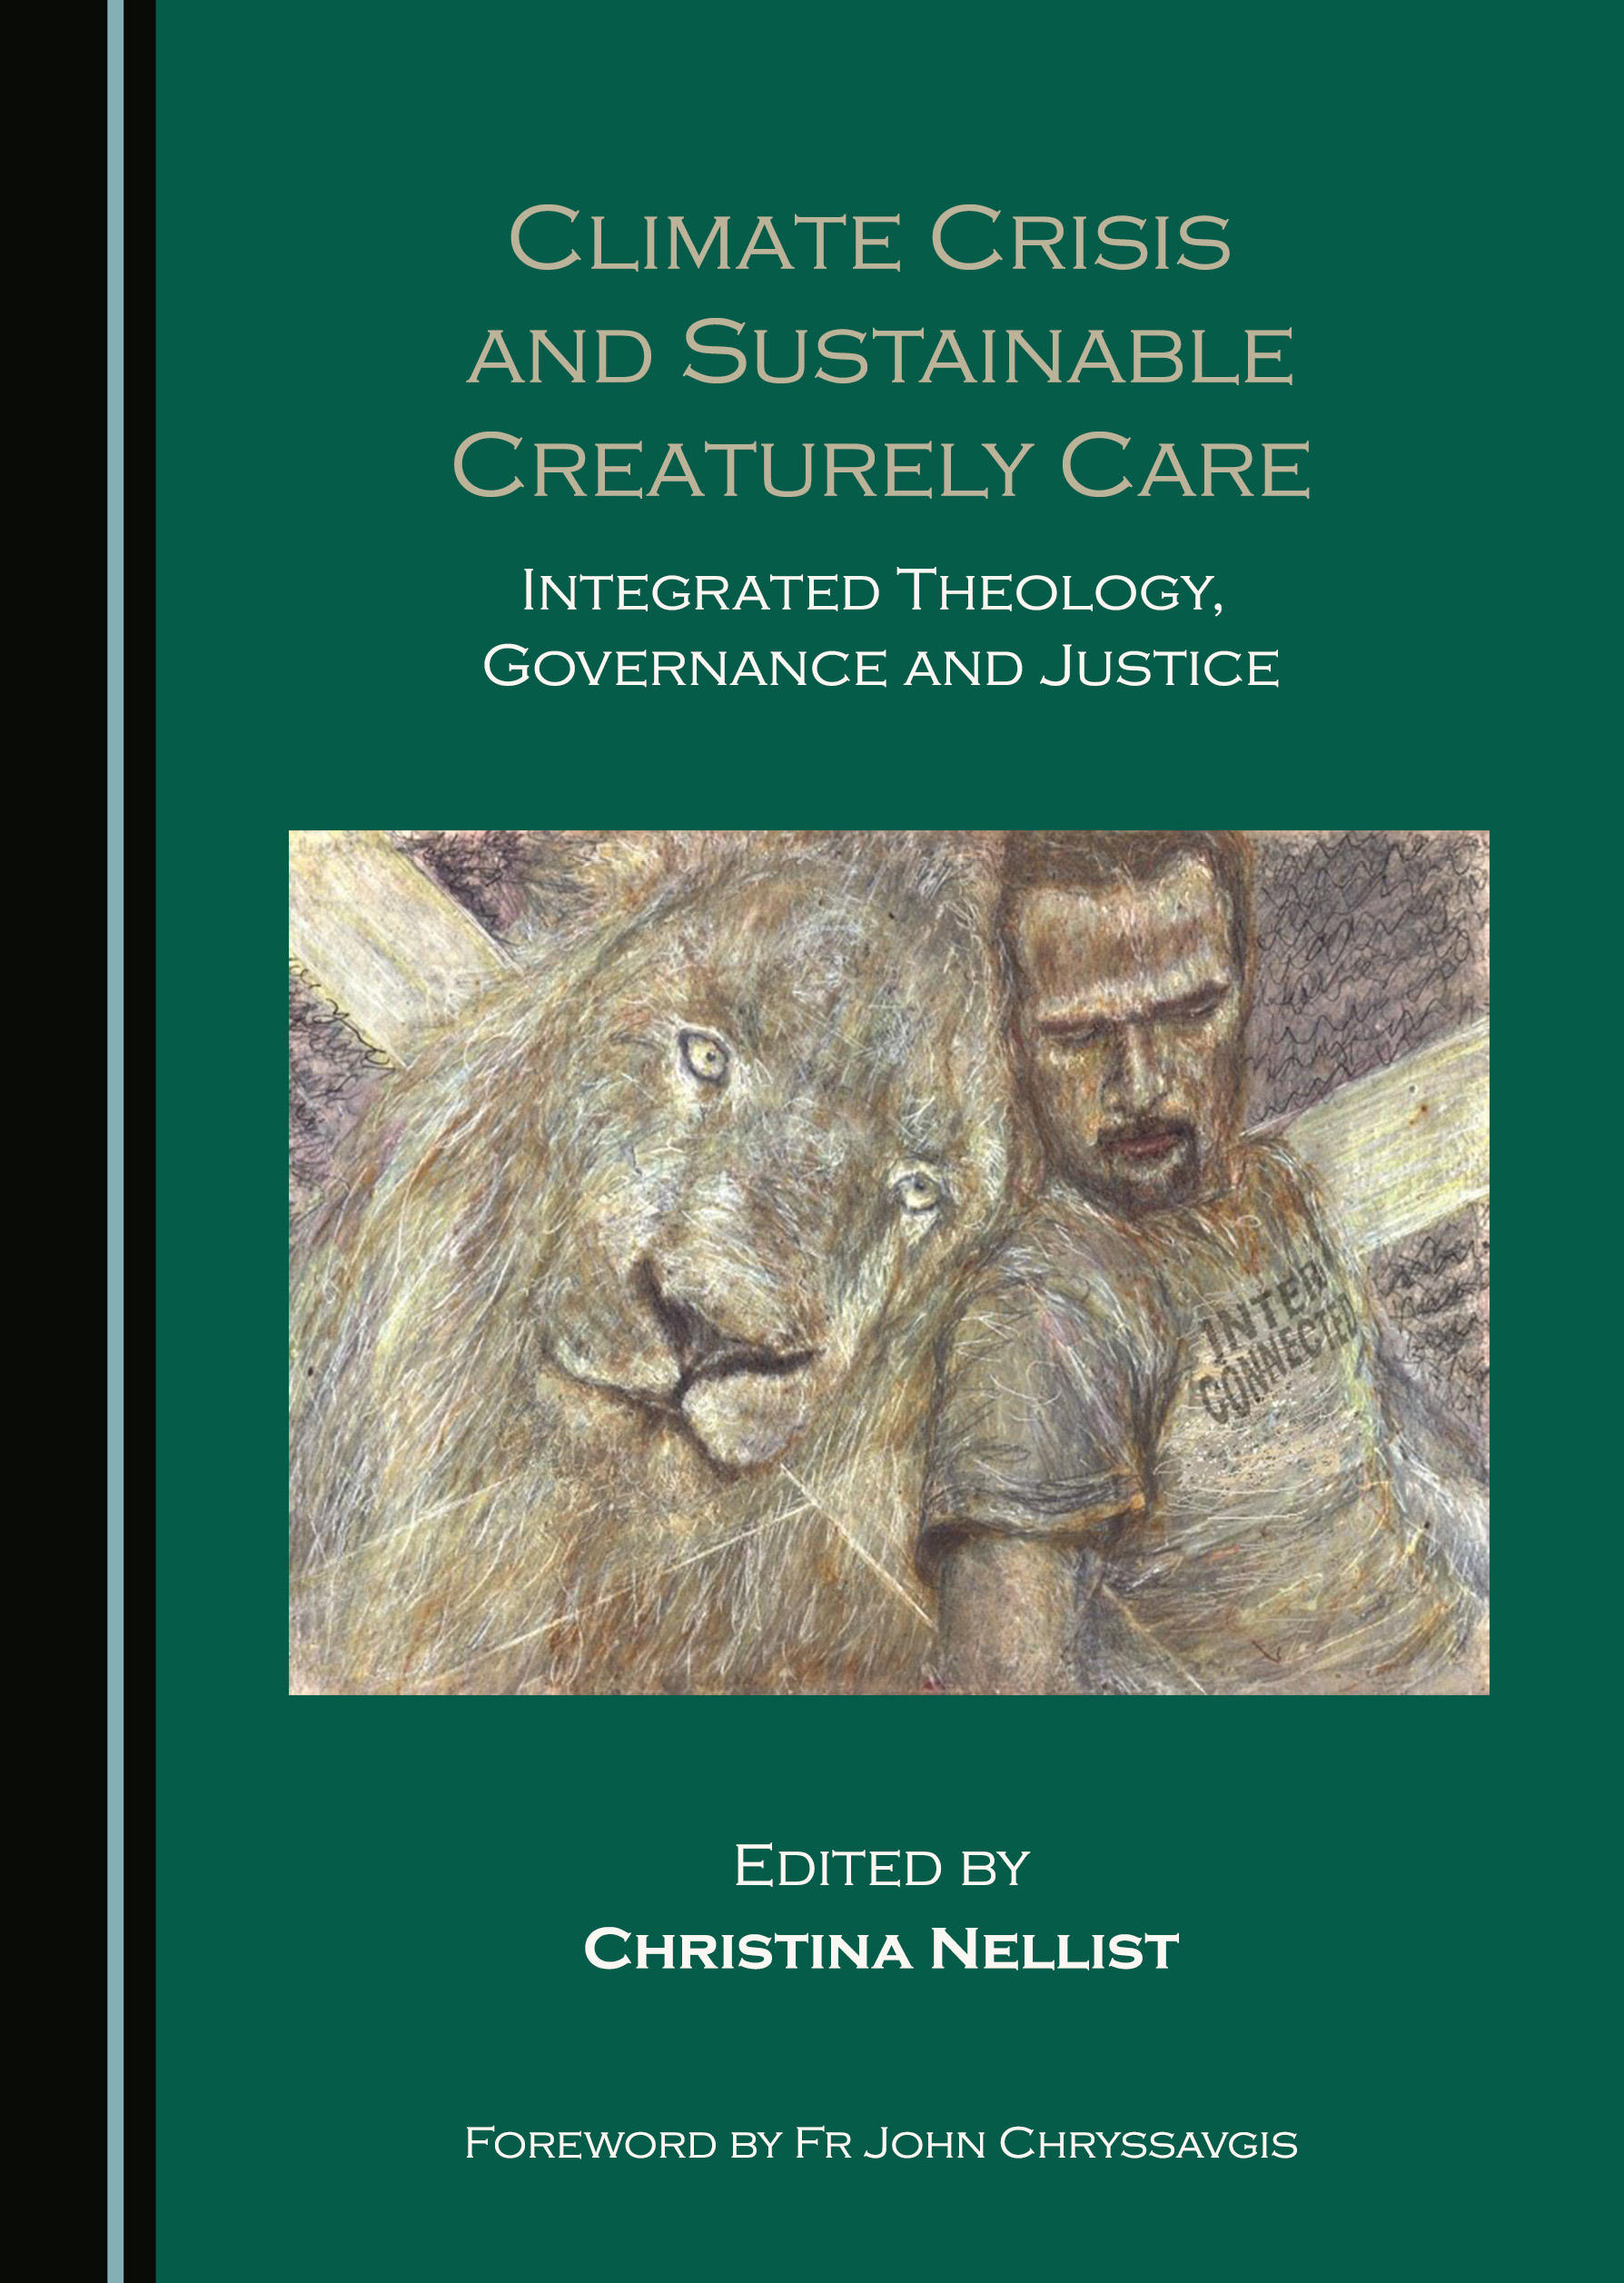 Climate Crisis and Sustainable Creaturely Care: Integrated Theology, Governance and Justice